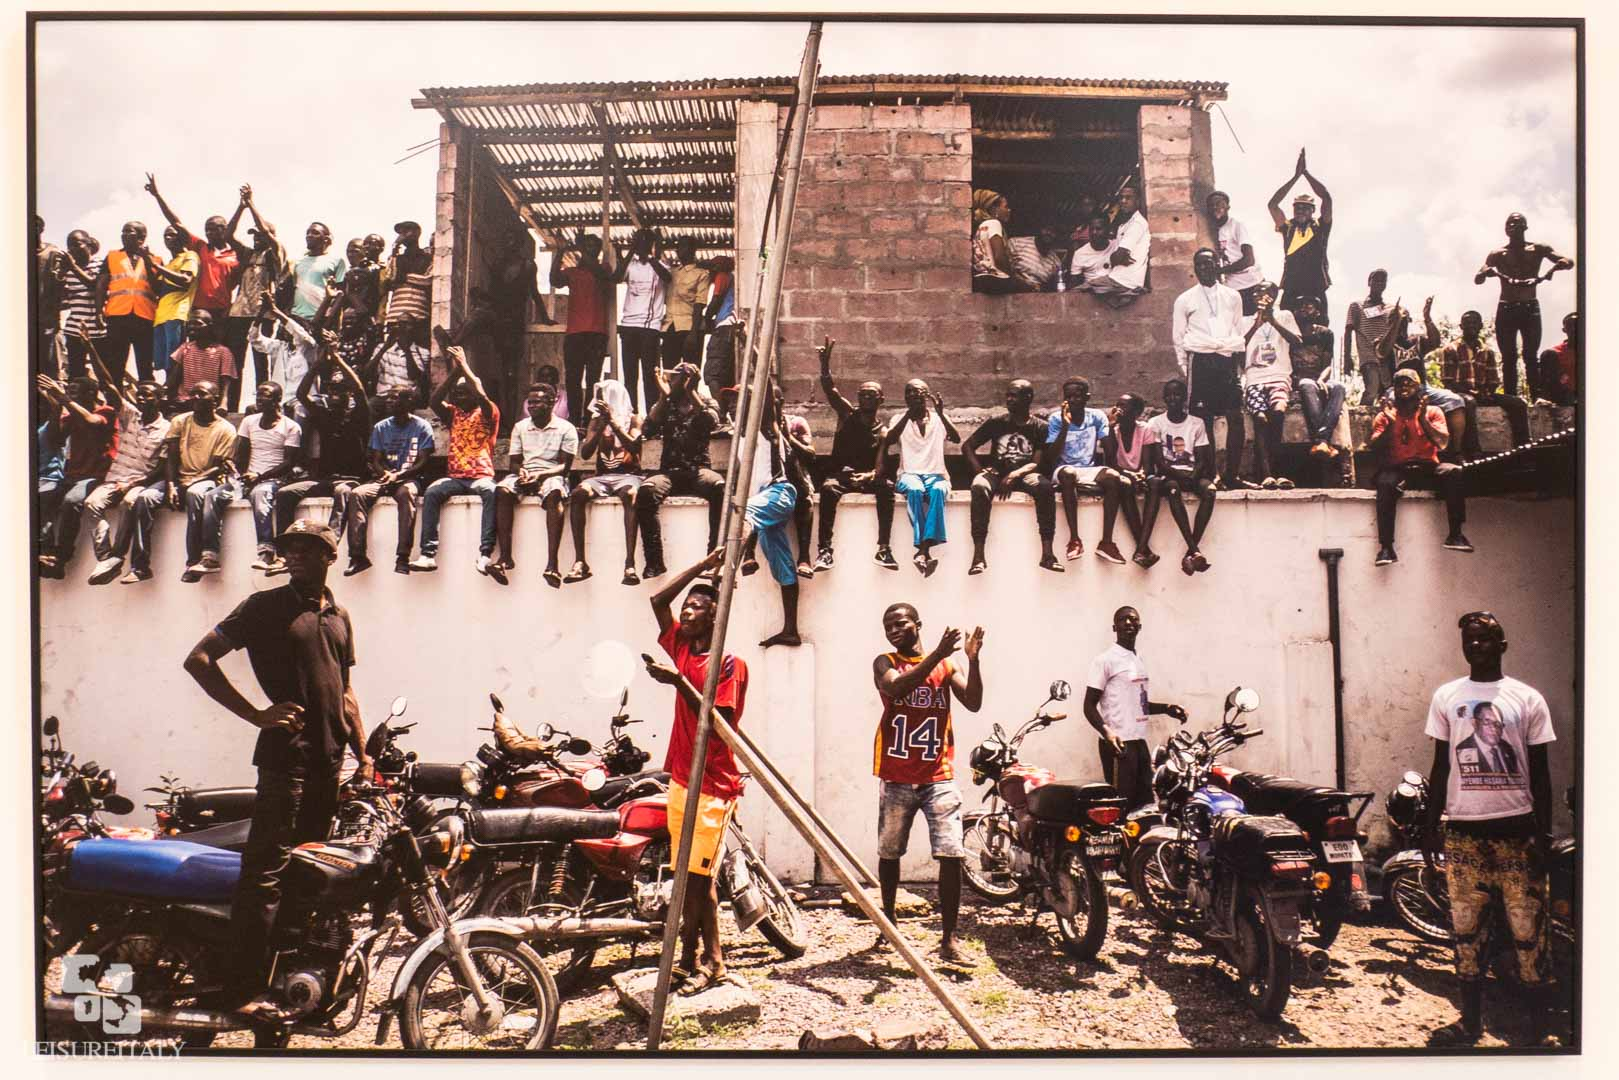 World Press Photo Exhibition - One of the photos